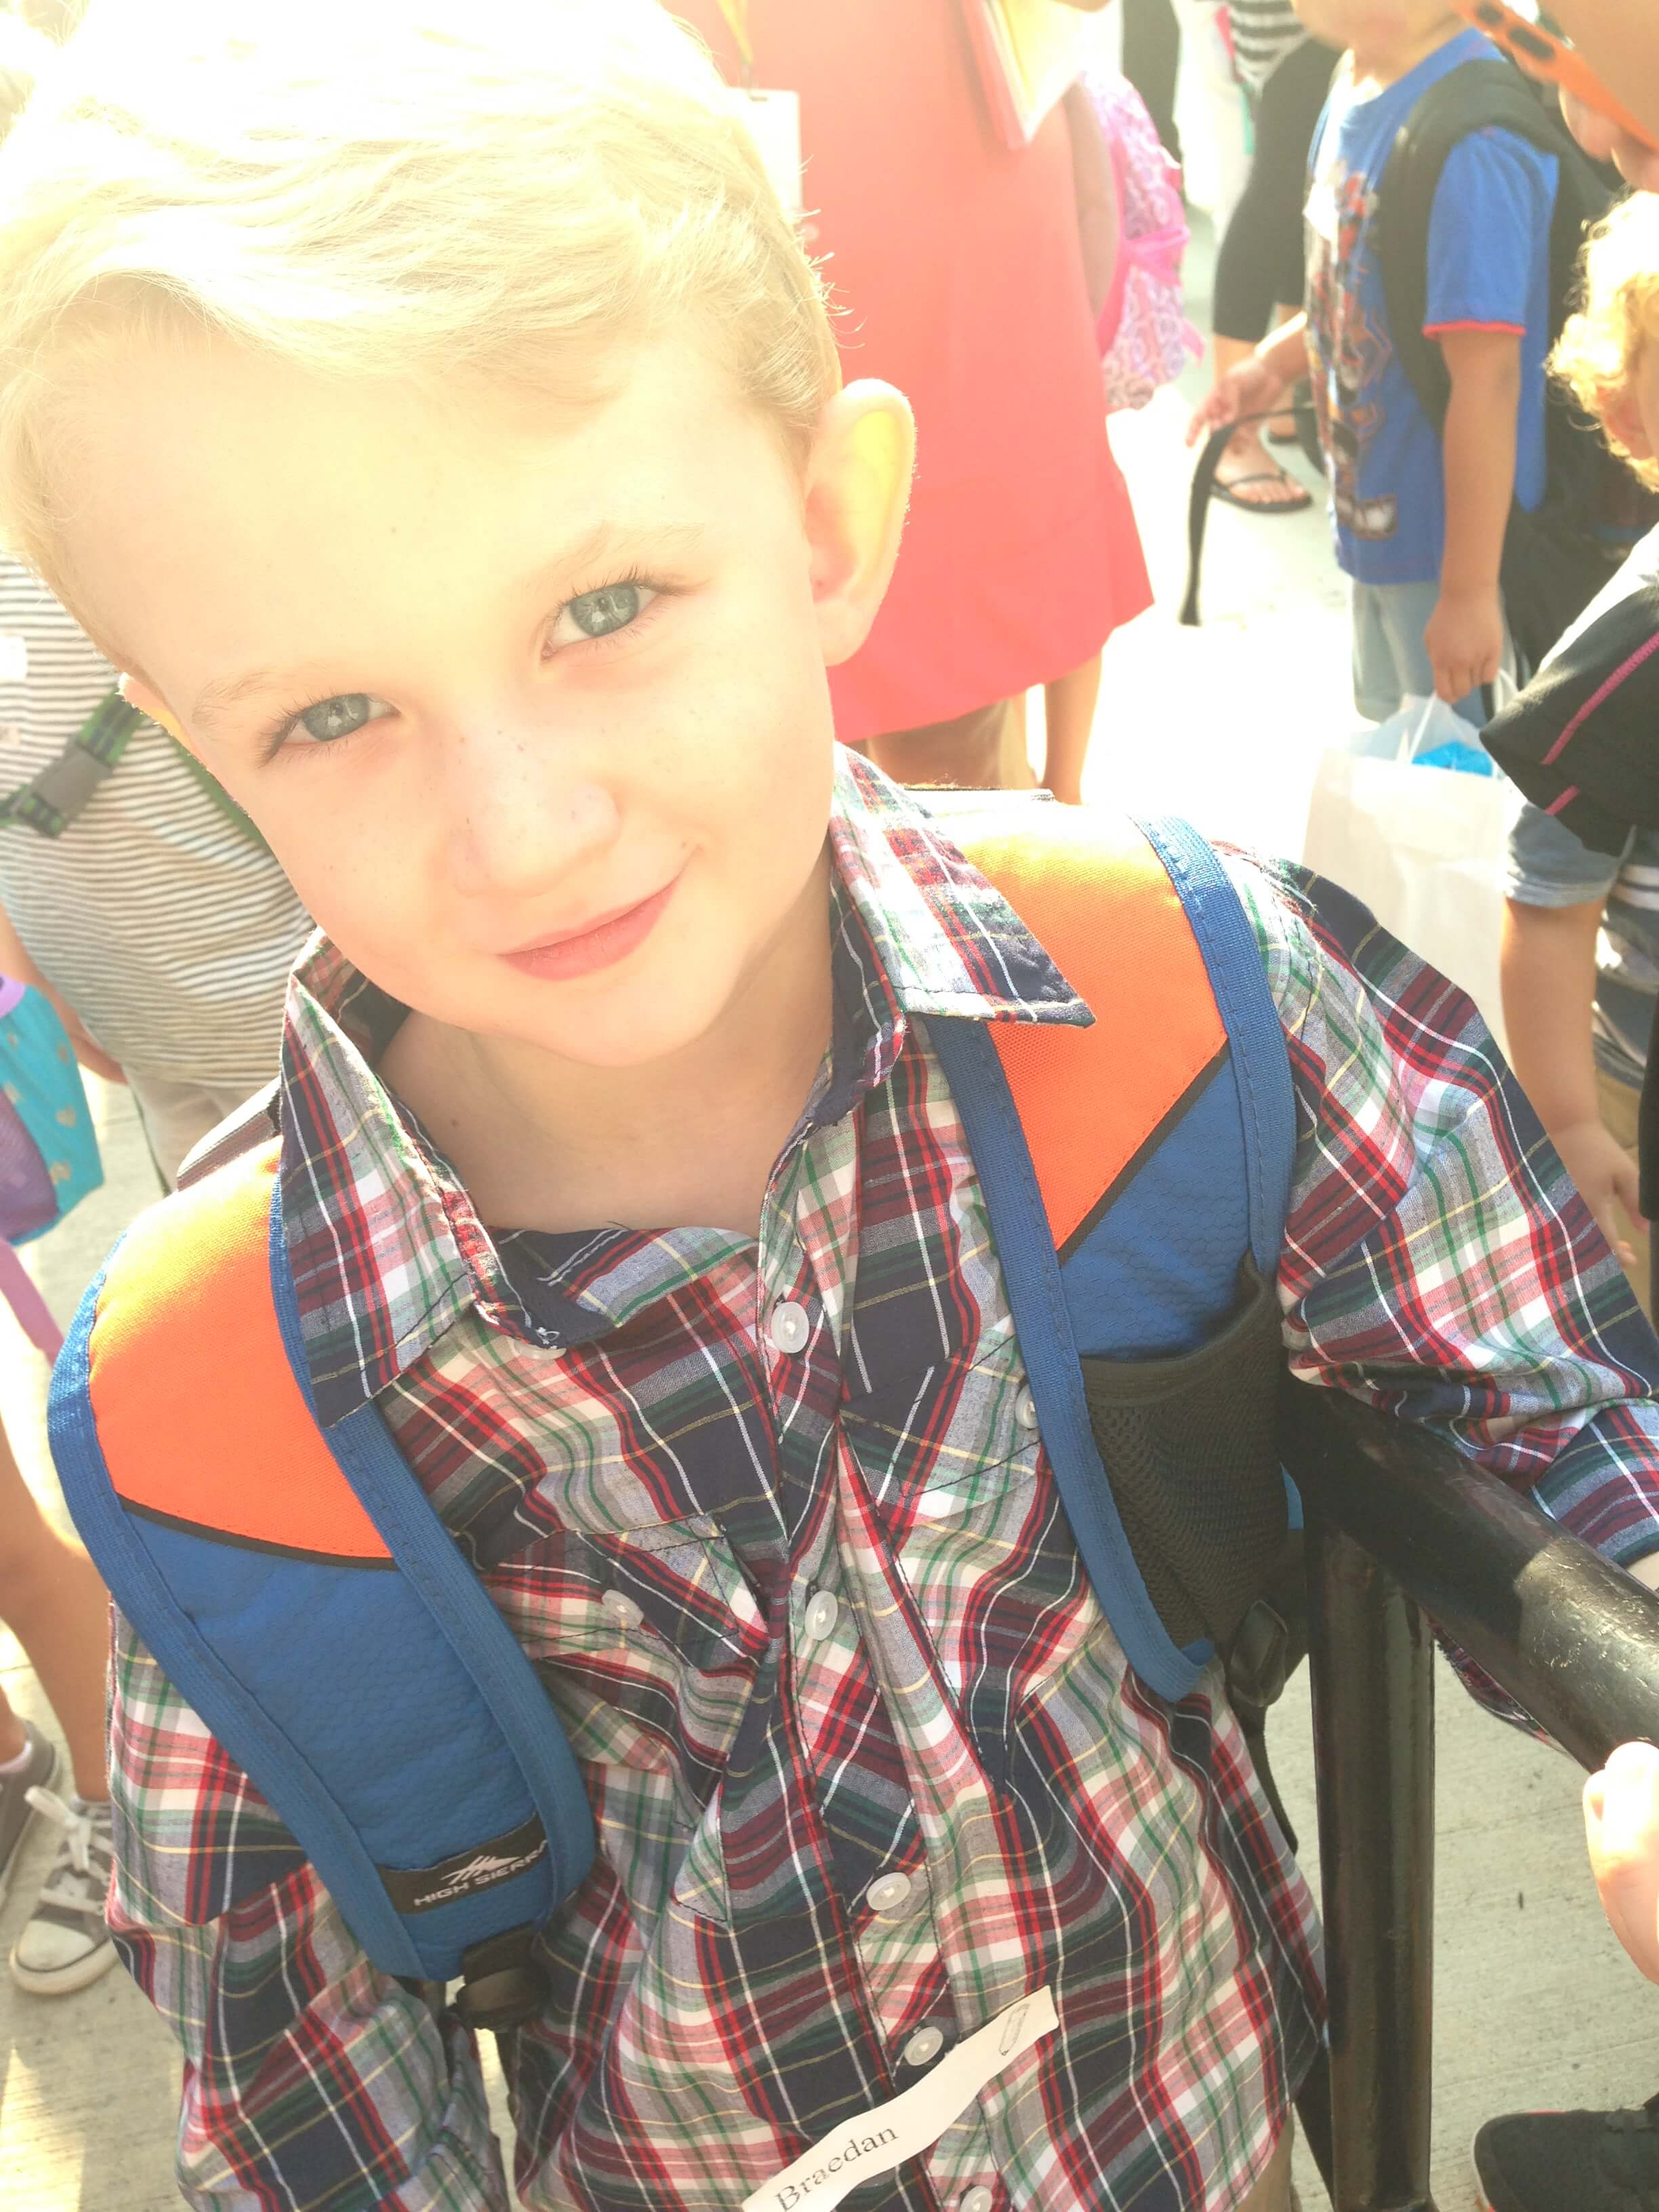 Sending him off to a new school for Kindergarten. Will he stay safe with his food allergies? www.coffeeandcarpool.com